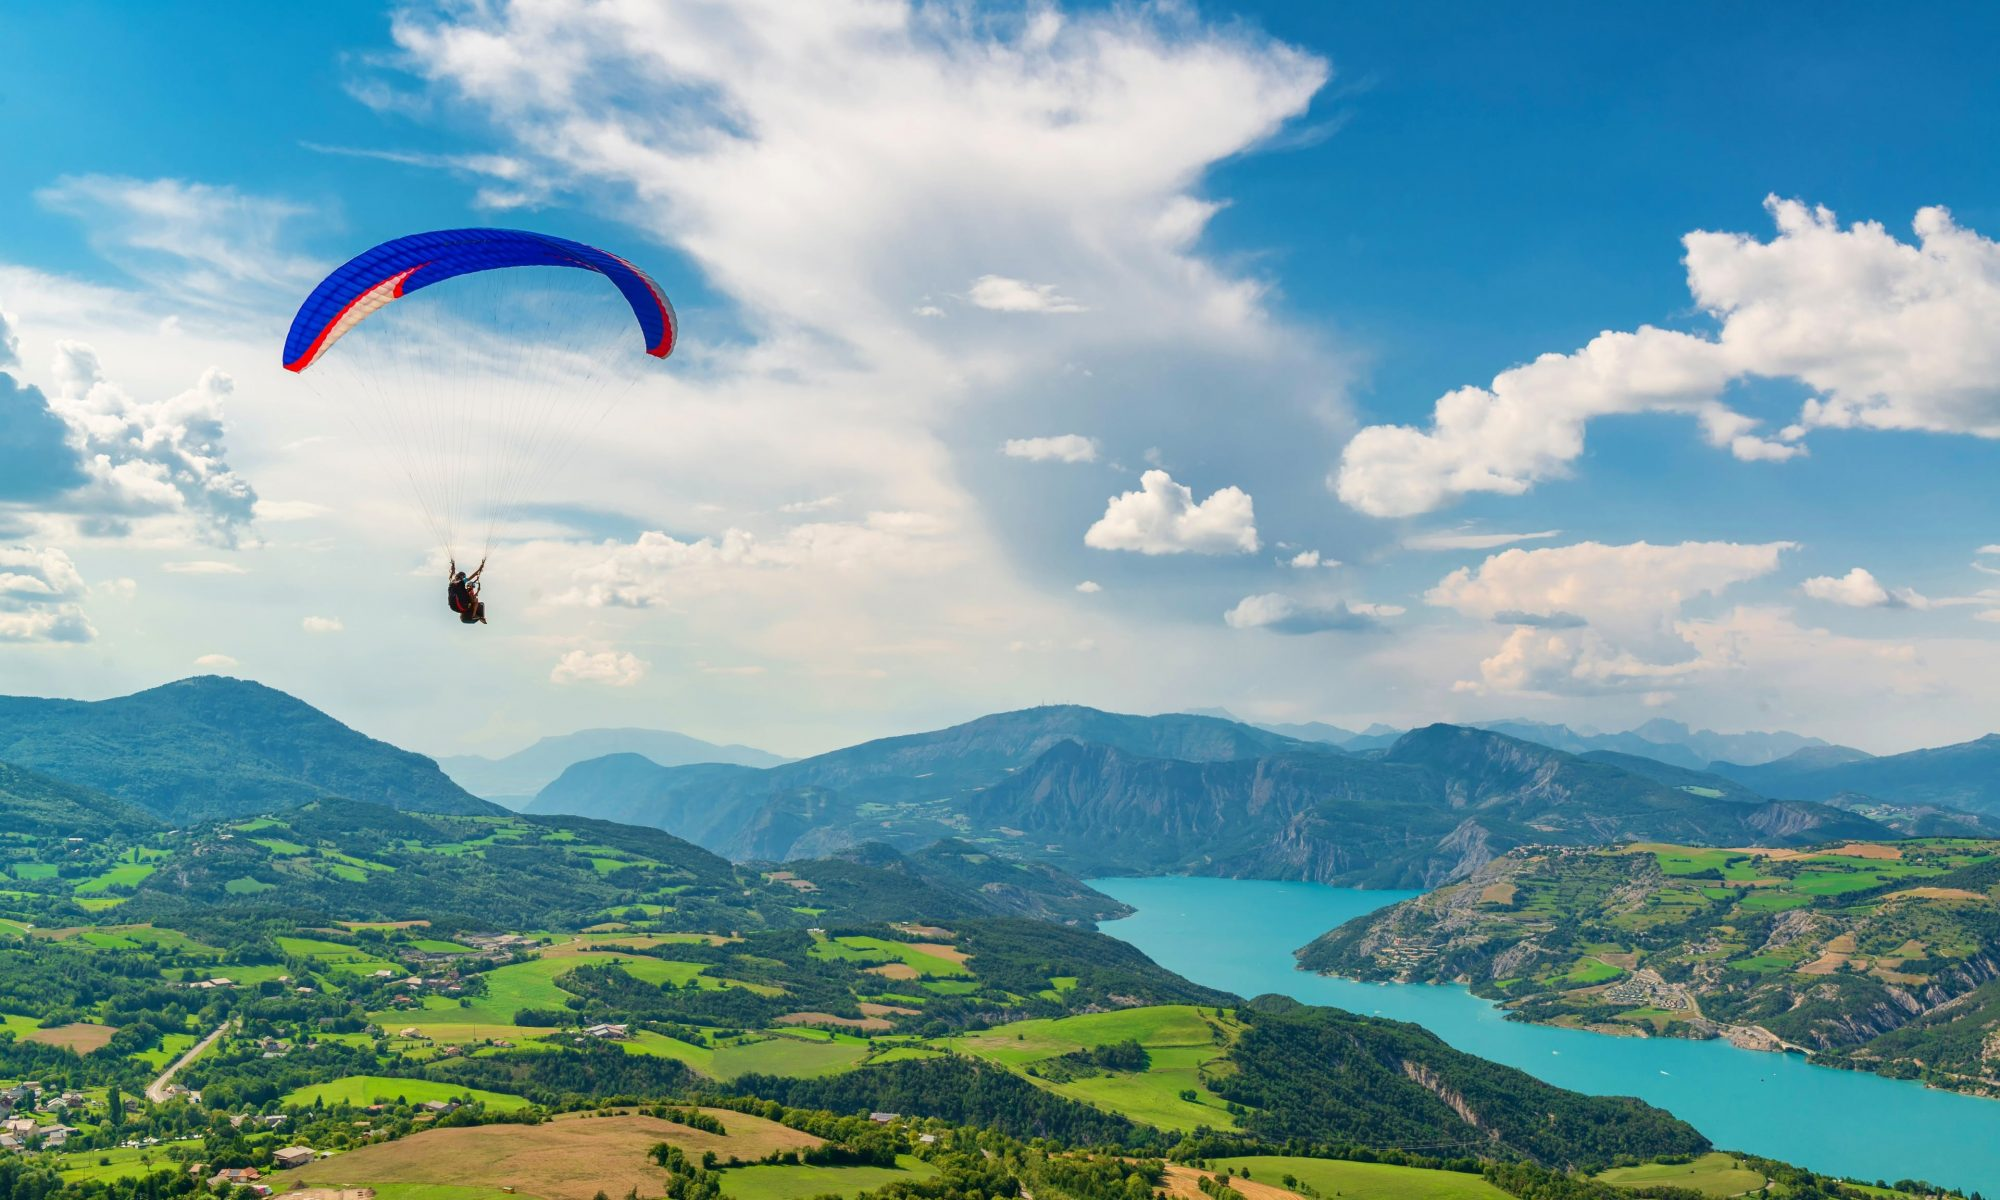 Paragliding in France allows you to explore beautiful places, like Lake Annecy, from a new perspective.